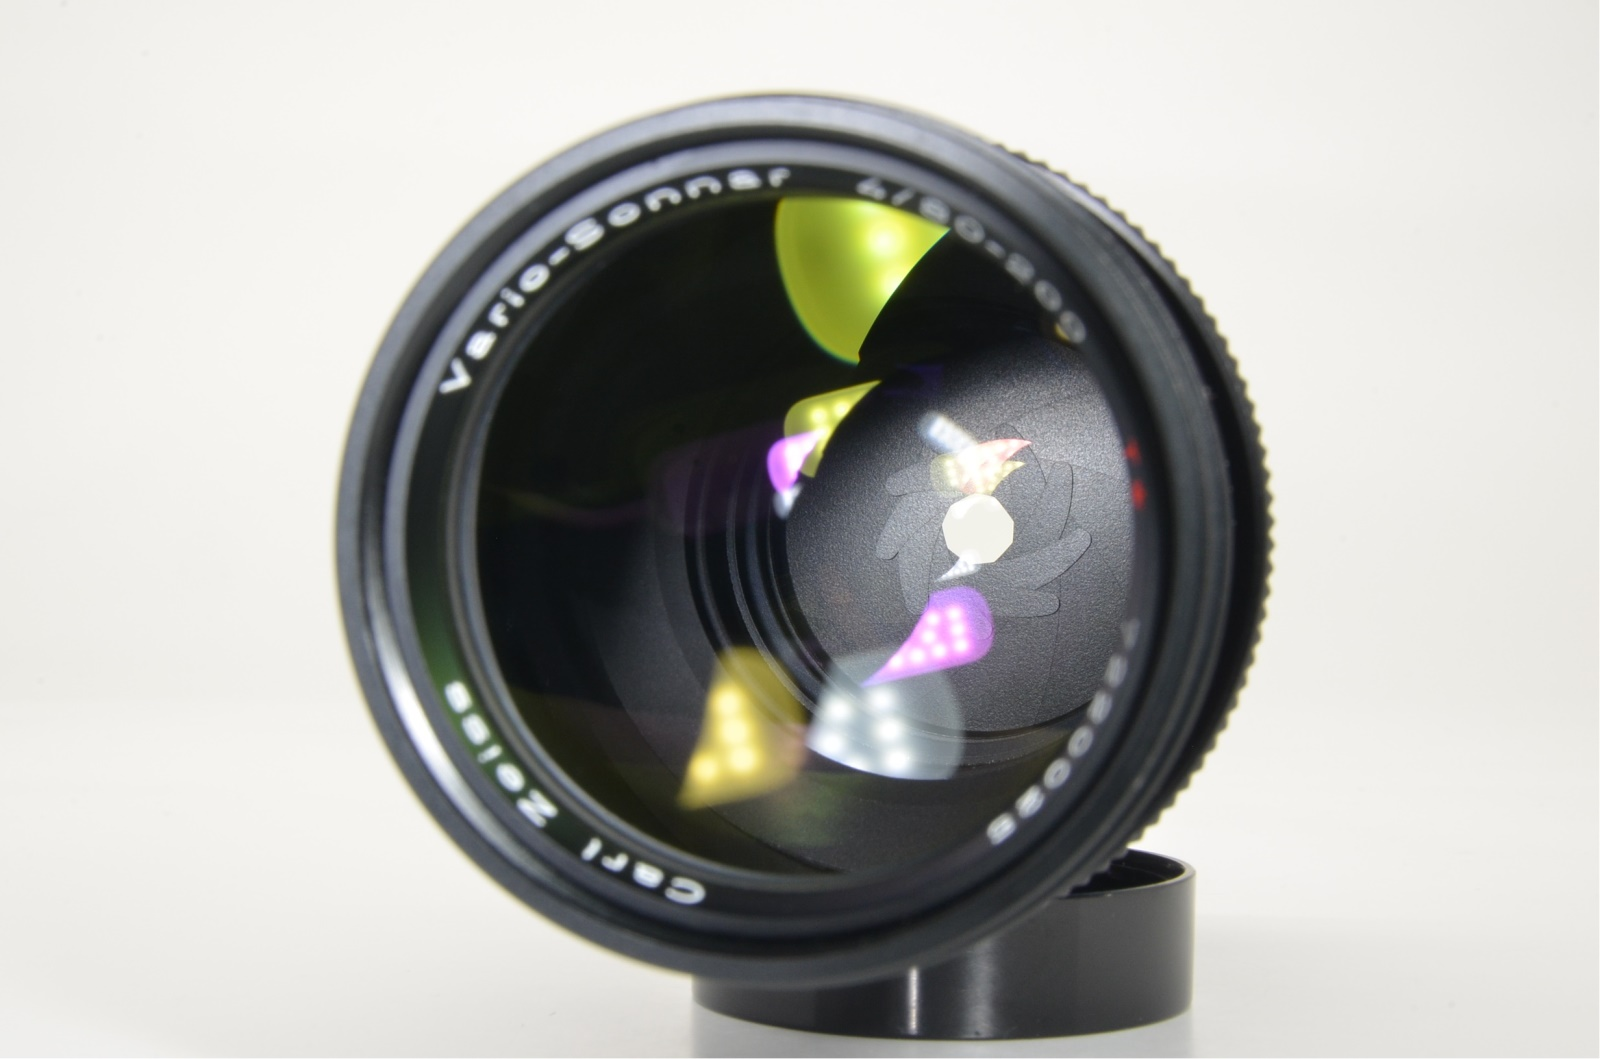 contax carl zeiss vario-sonnar t* 80-200mm f4 mmj japan shooting tested